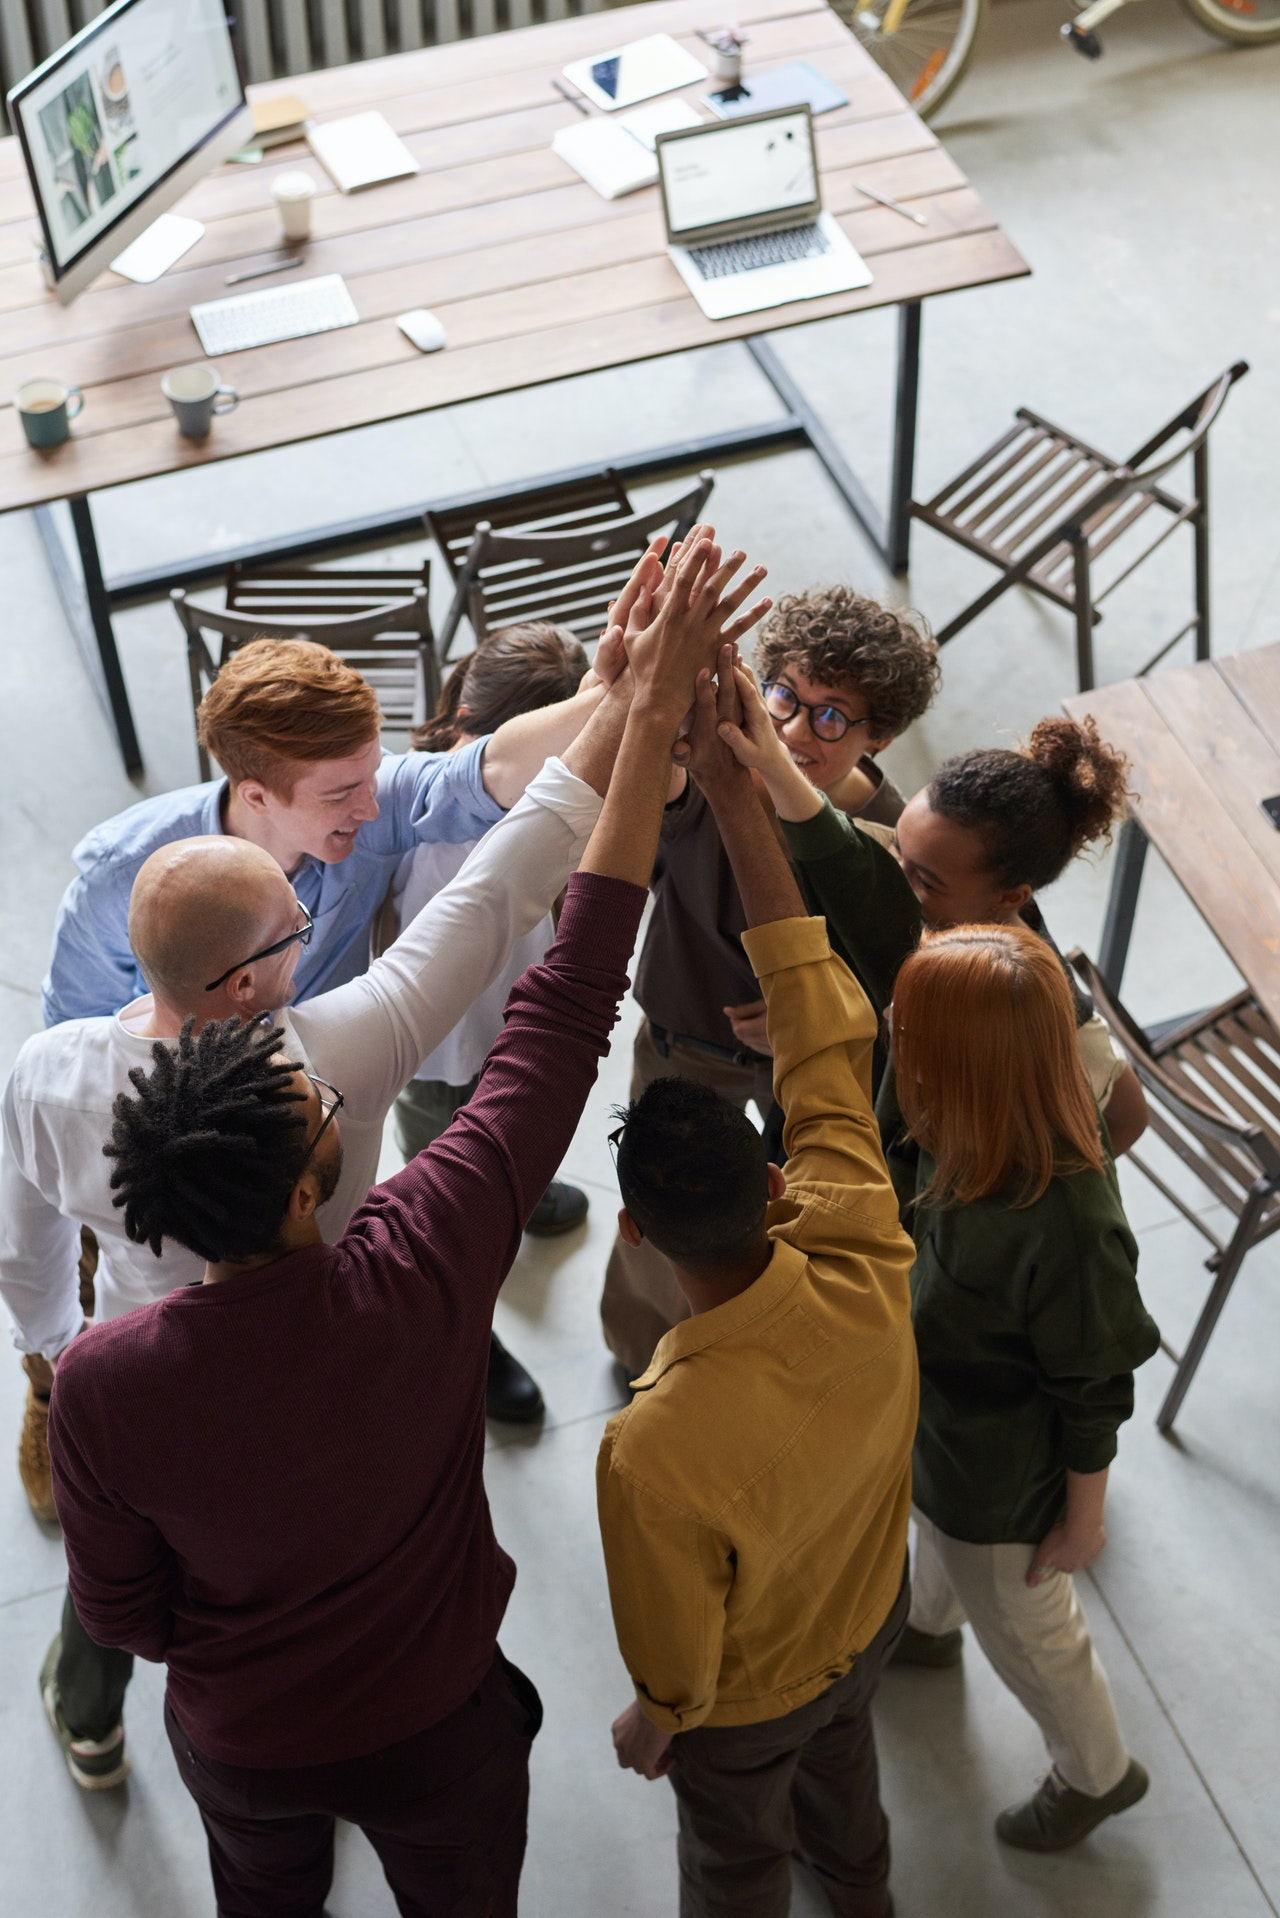 Diversity in the workplace – A new perspective to team working